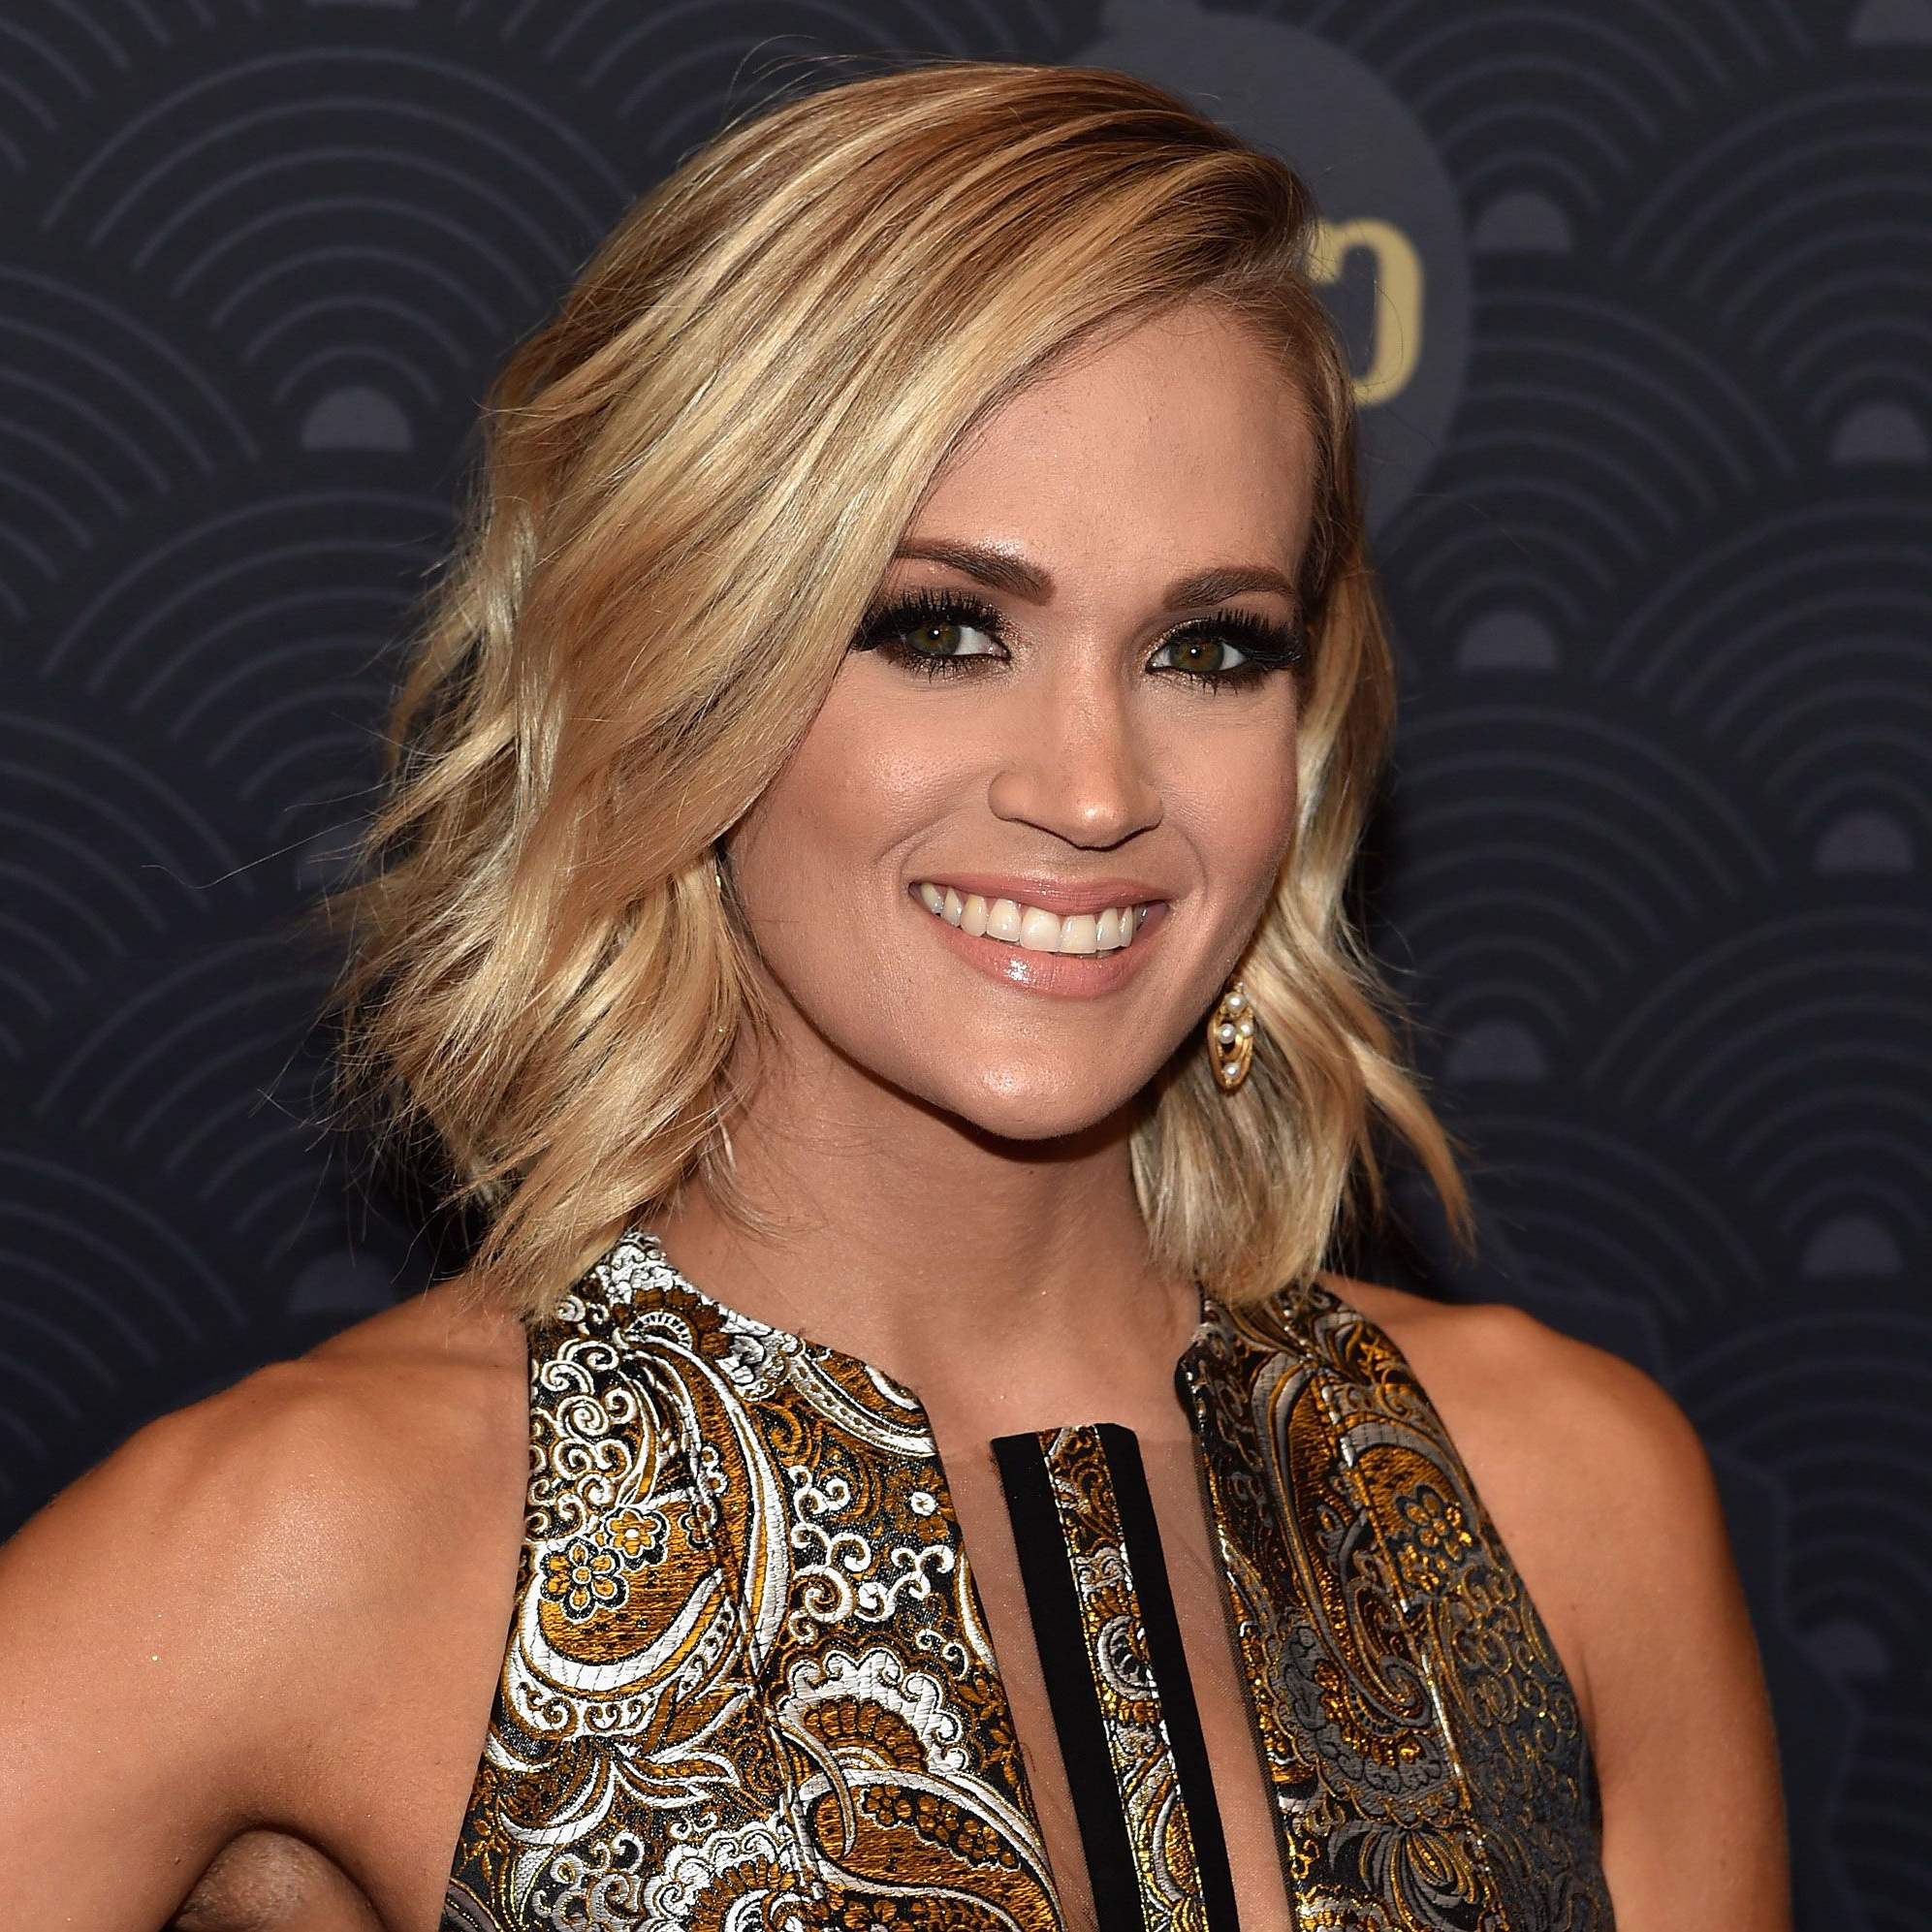 Explore Gallery Of Carrie Underwood Short Hairstyles Showing 20 Of